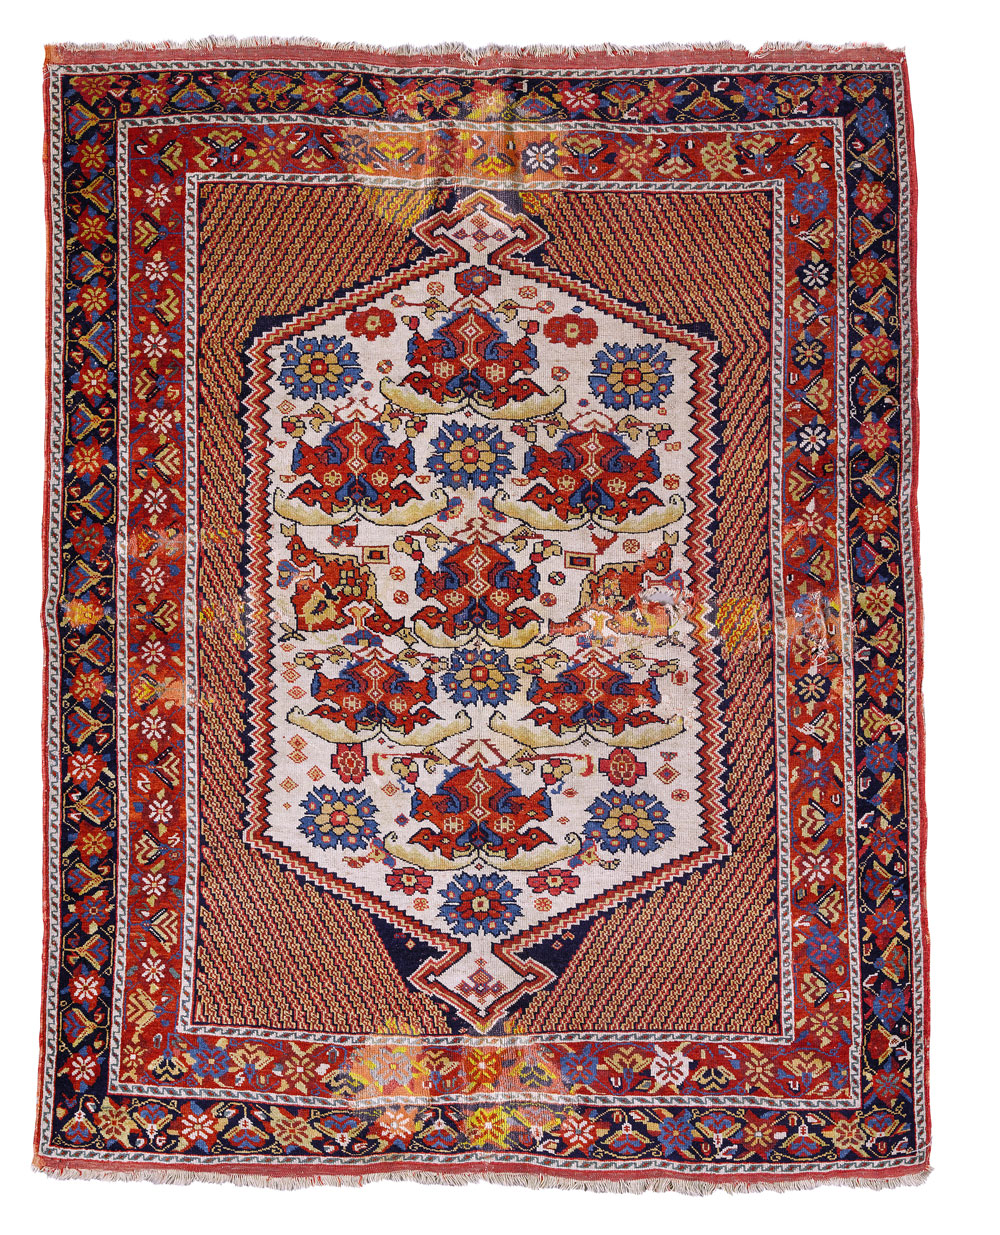 Rugs And Textiles In Sotheby S London Islamic Sale Hali